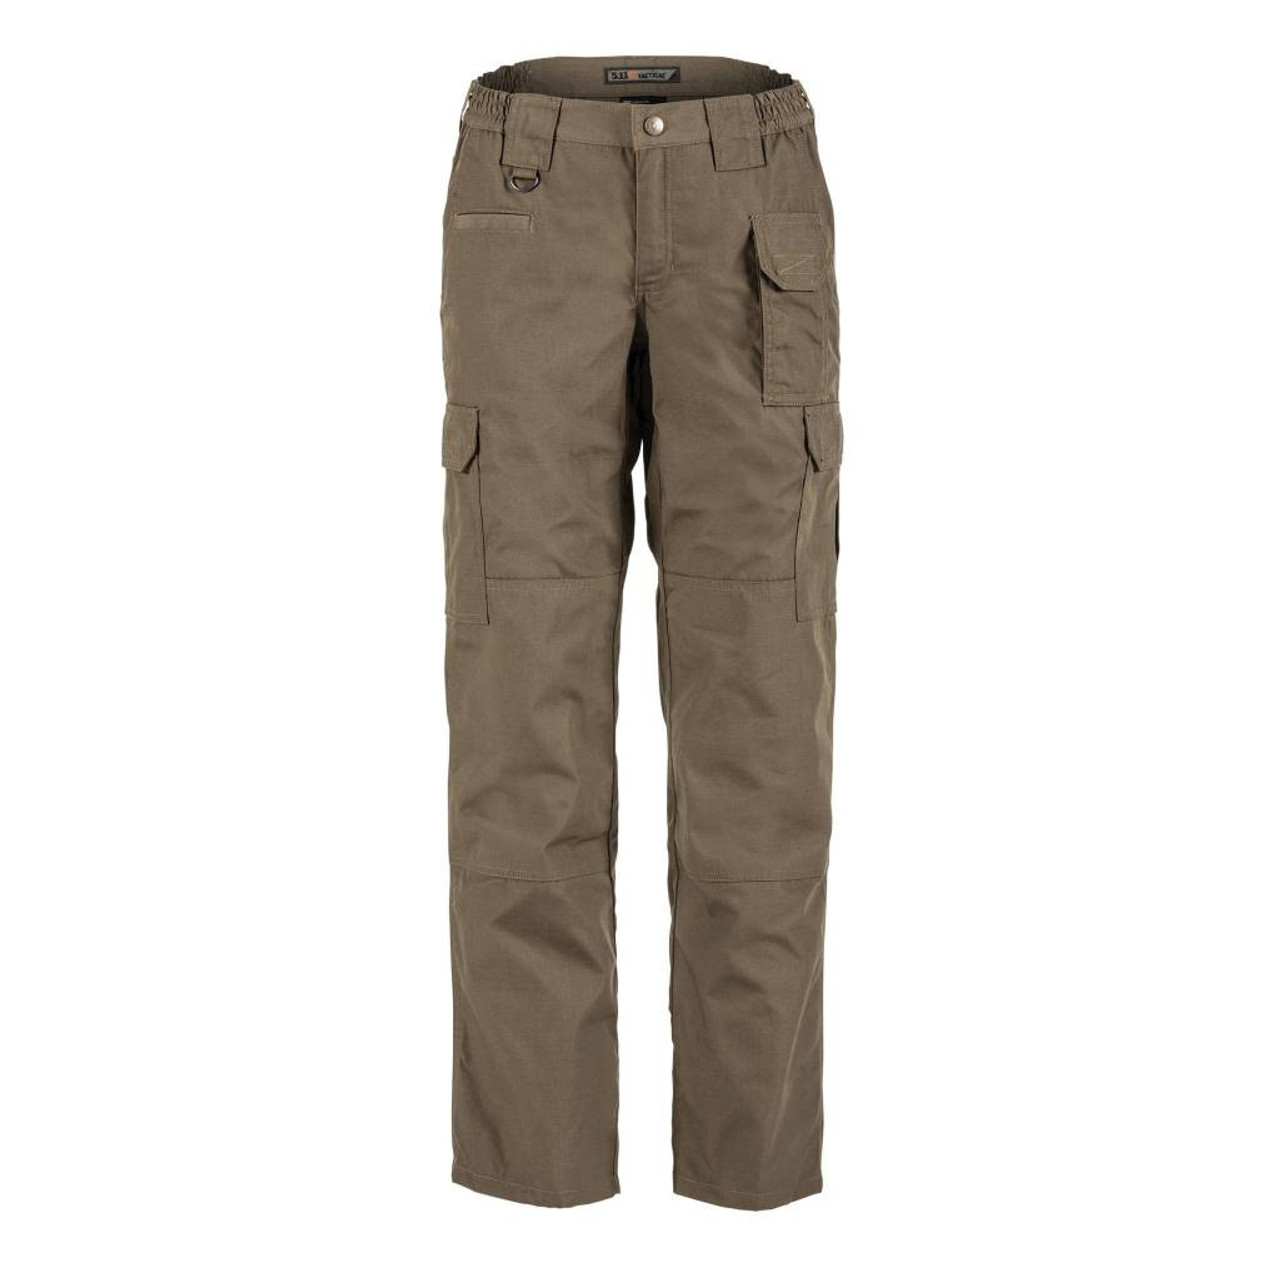 64360: Women's TacLite Pro Pant by 5.11 Tactical